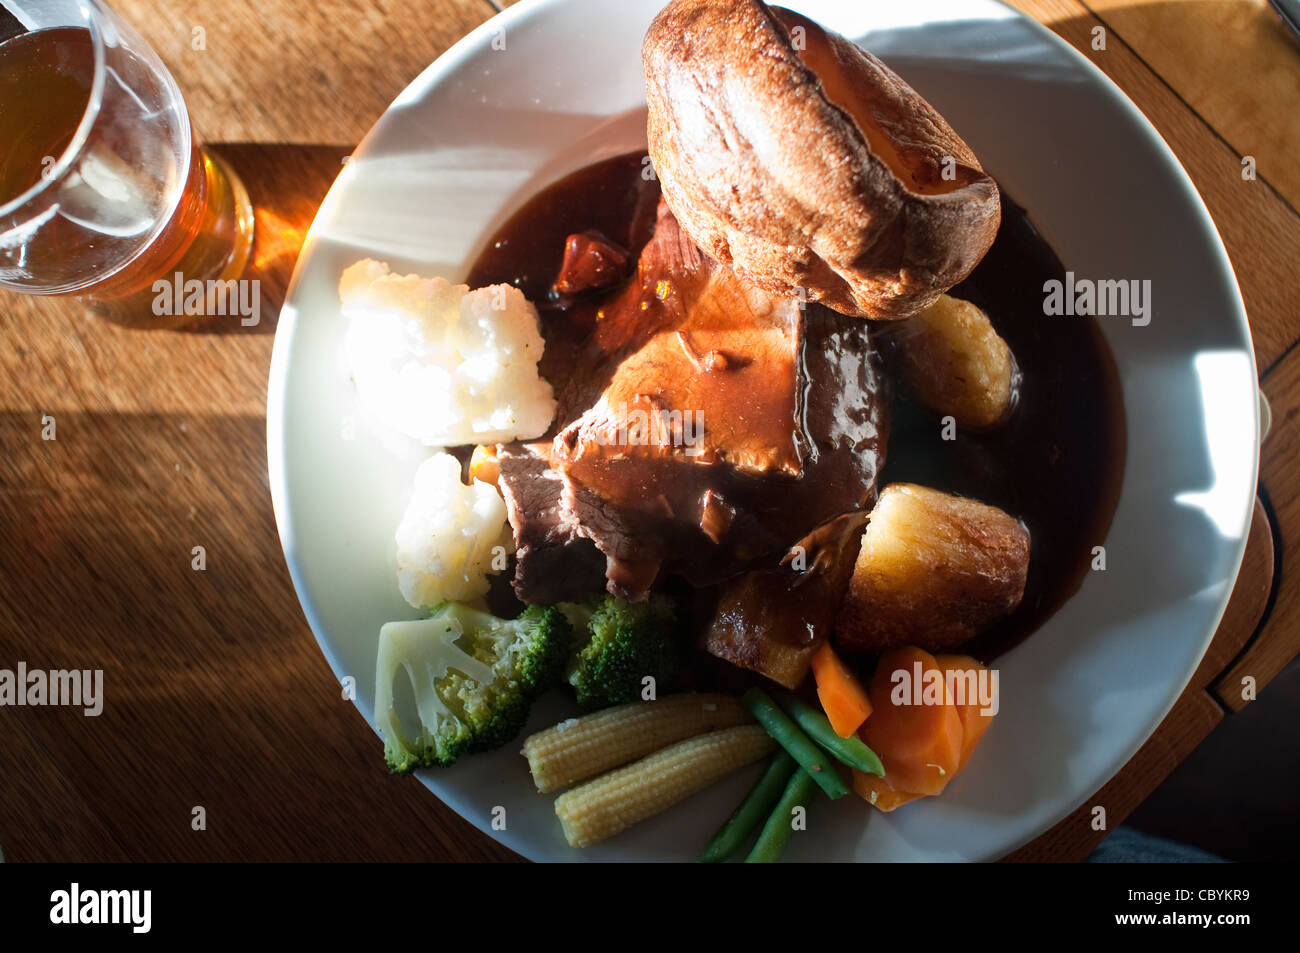 A typical roast beef Sunday lunch with yorkshire pudding, vegetables, gravy, and a pint of ale, in a pub in Northumberland, - Stock Image